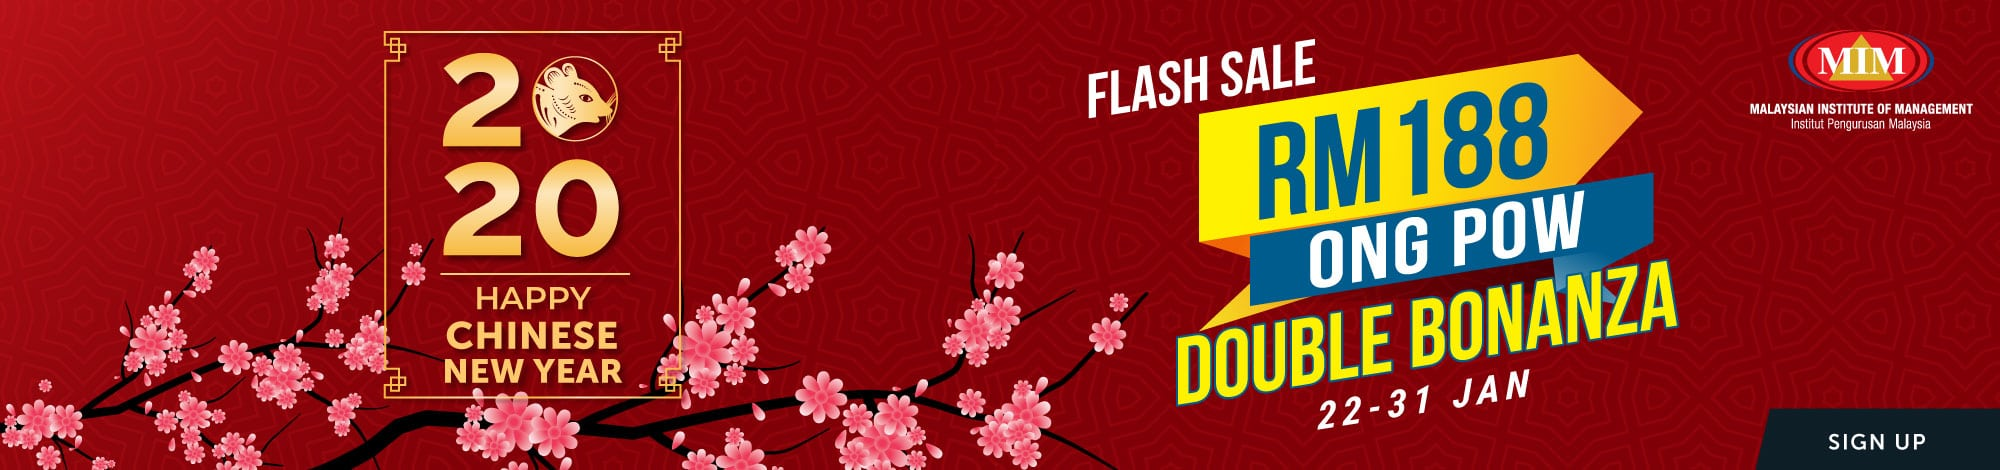 Social-media-banner_Chinese-New-Year-2020_RM188-Double-Bonanza_Website